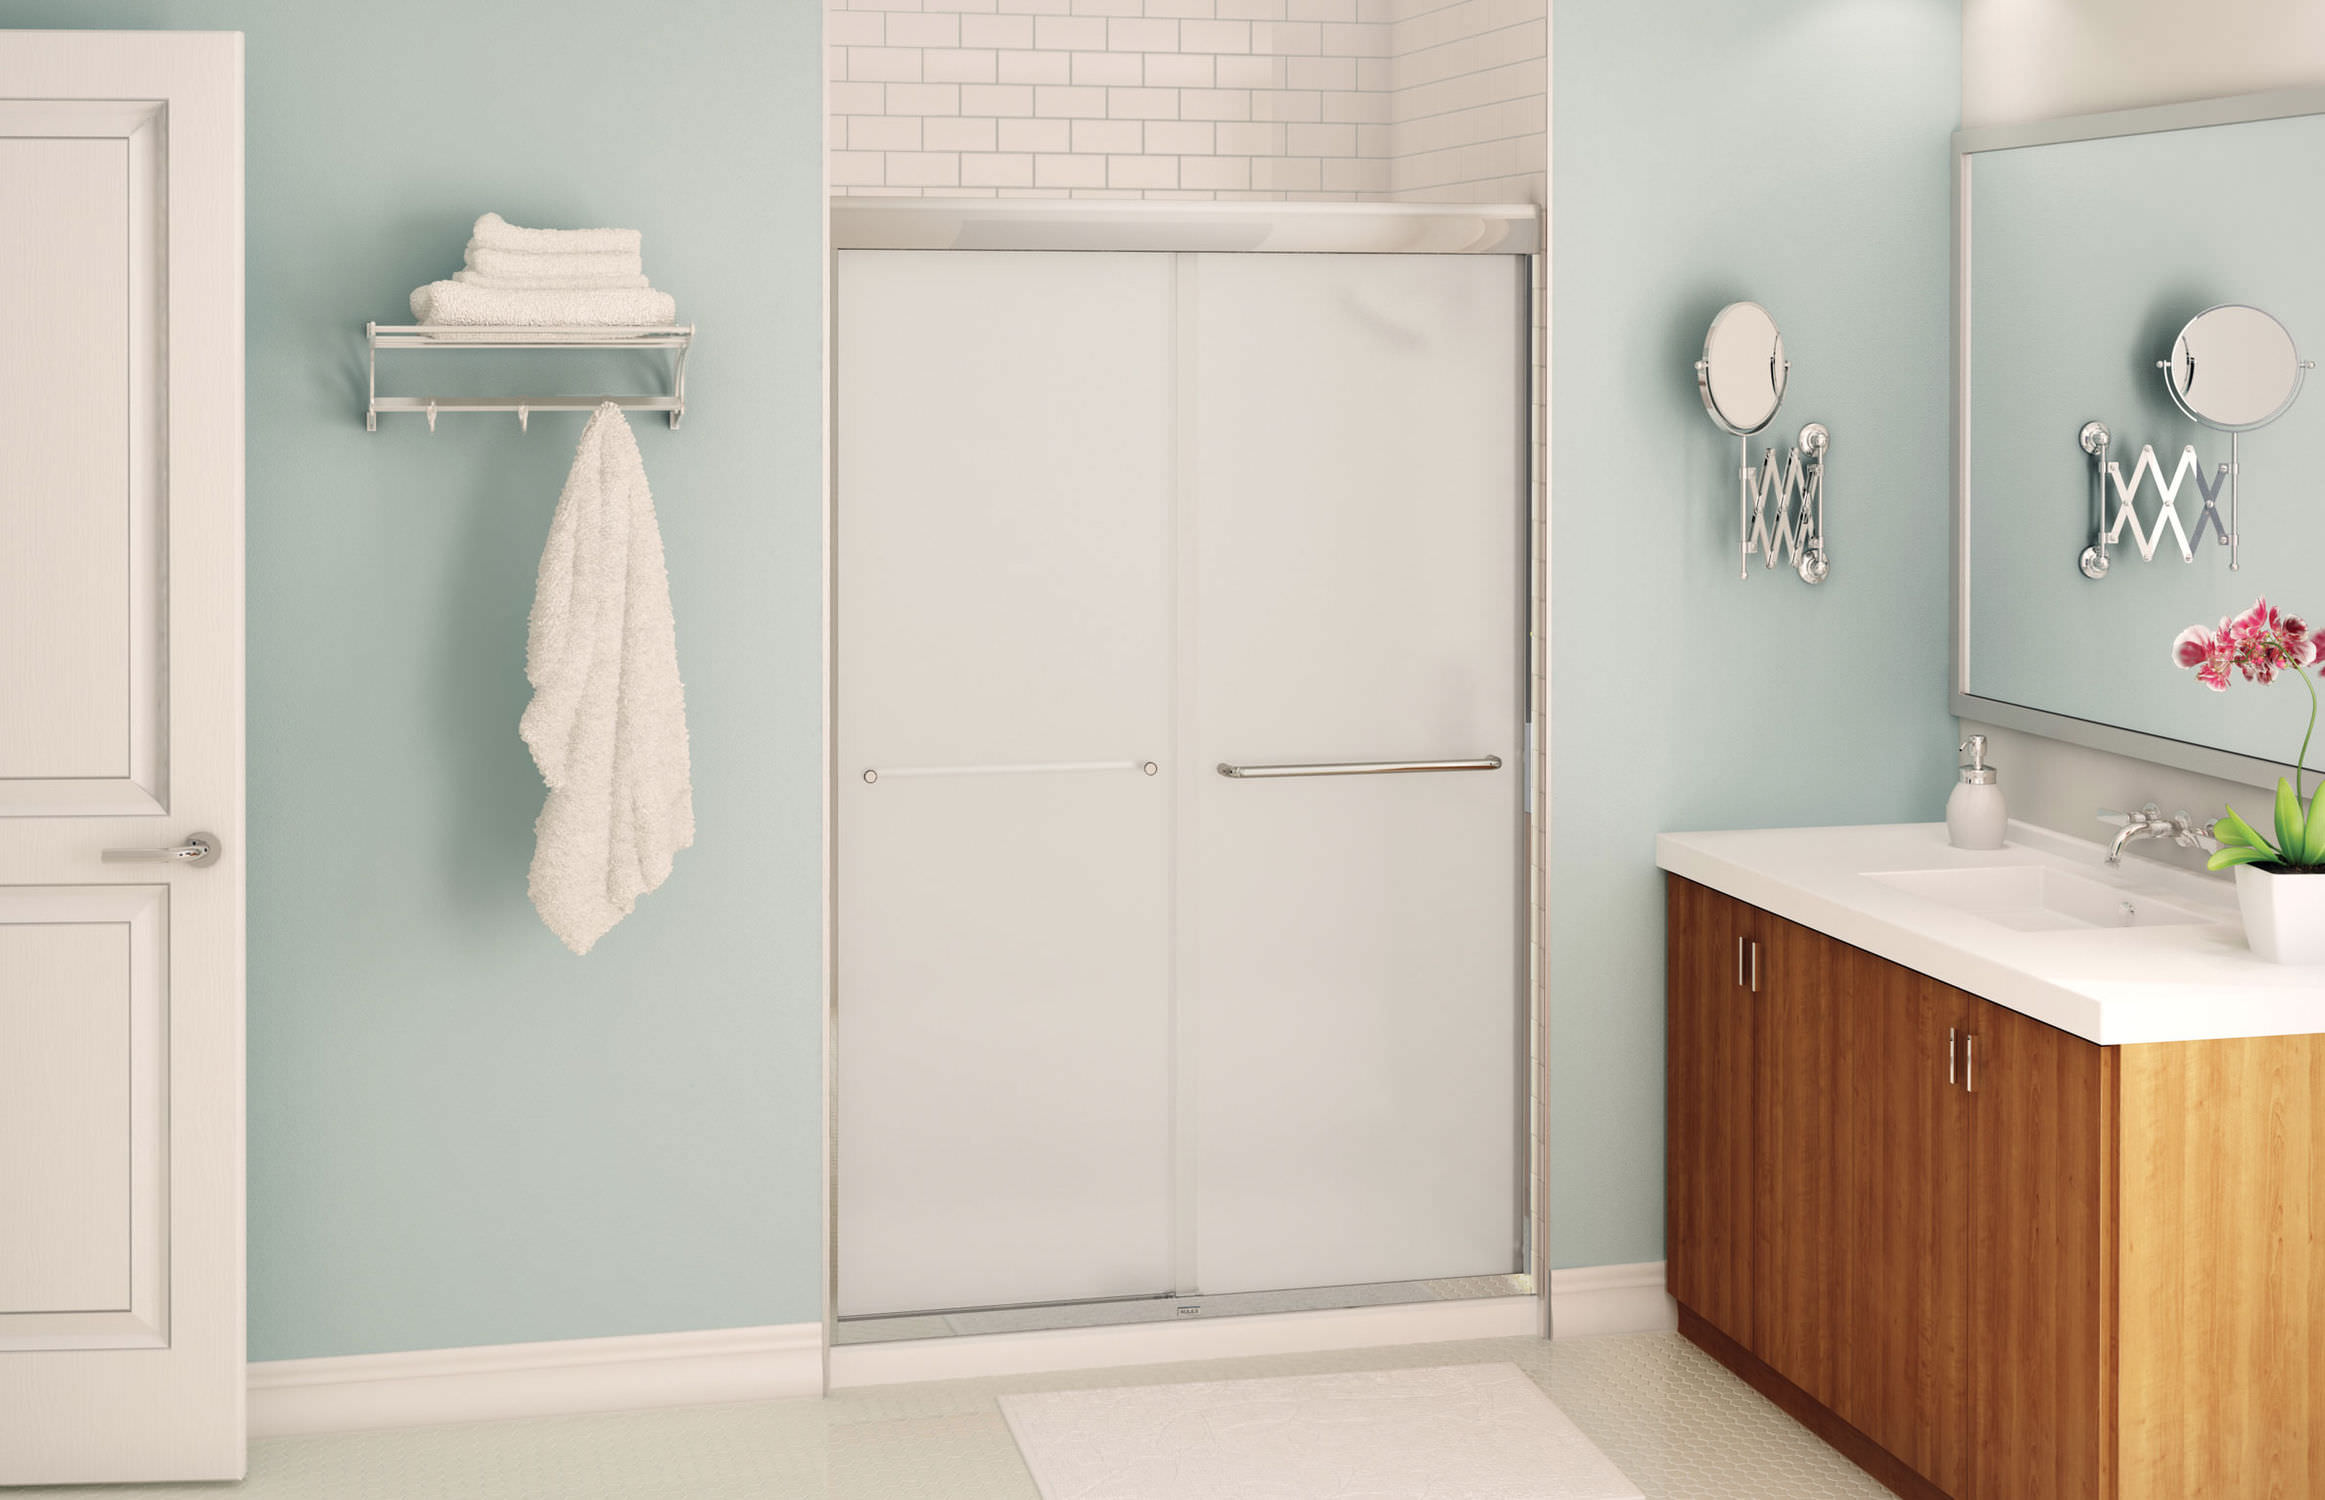 Sliding shower screen -  Sliding Shower Screen For Alcoves Aura Maax Bathroom